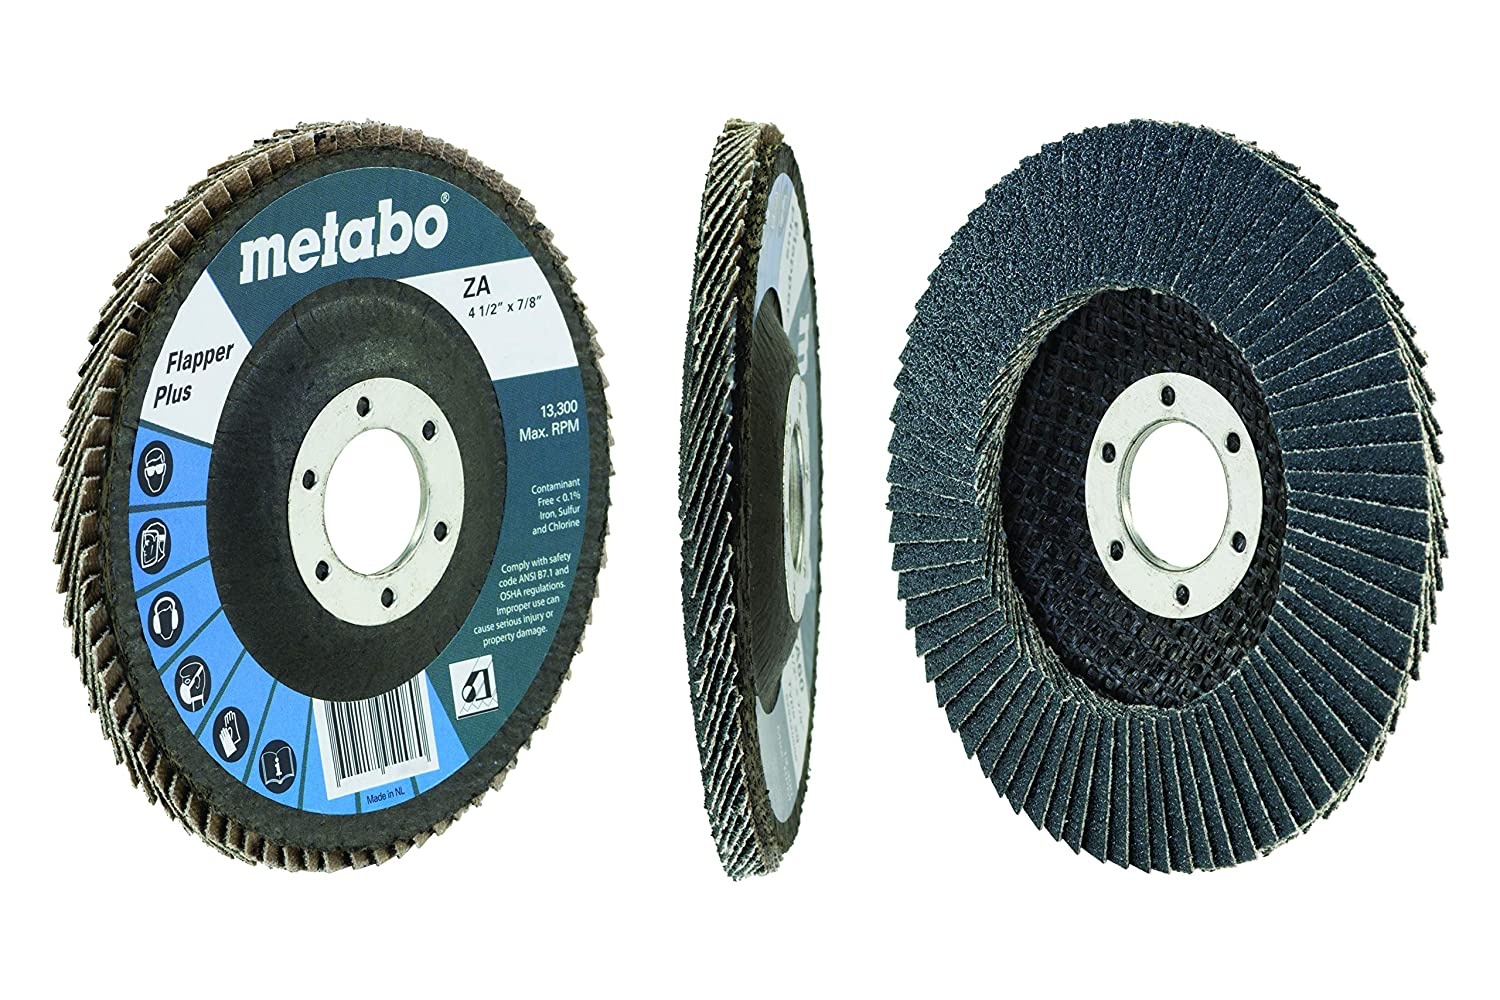 Metabo 629480000 4 1//2 Flapper Plus 36 7//8 T27 Fg